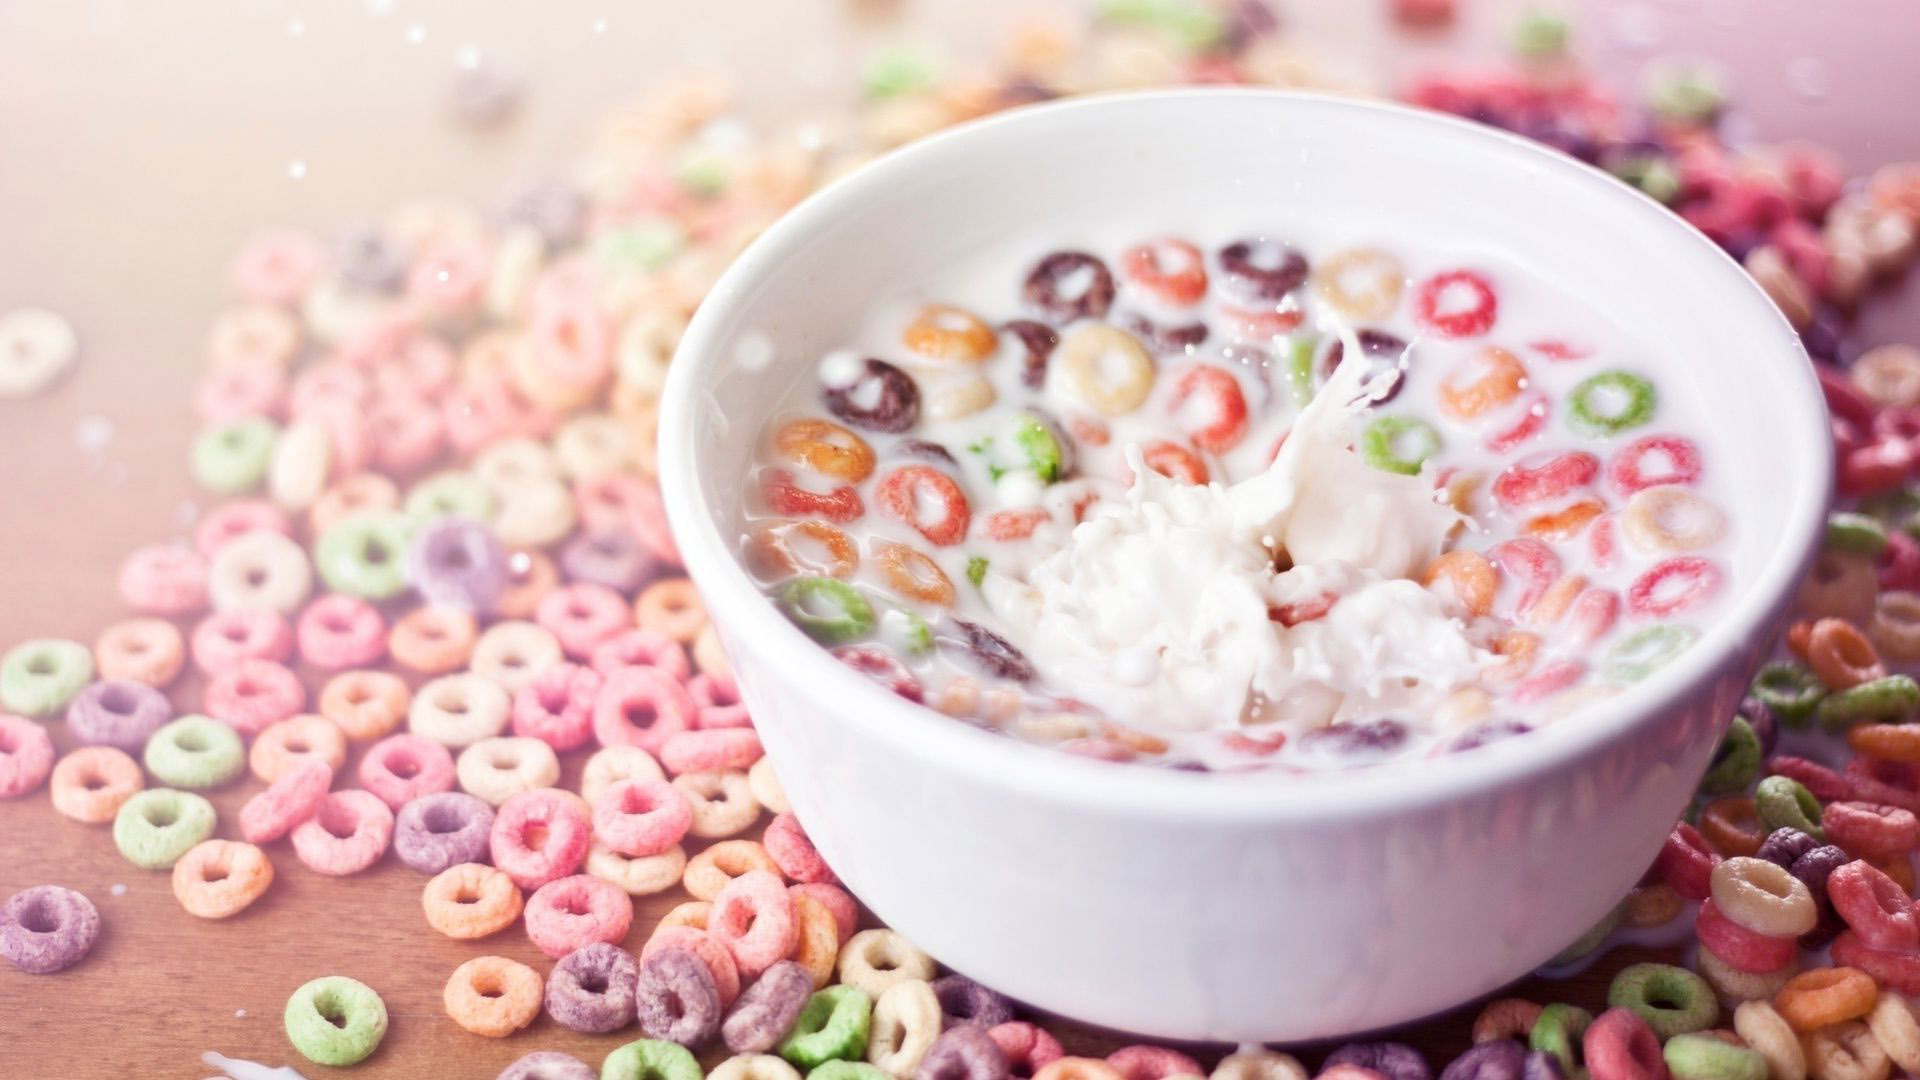 Awesome Cereal Wallpaper